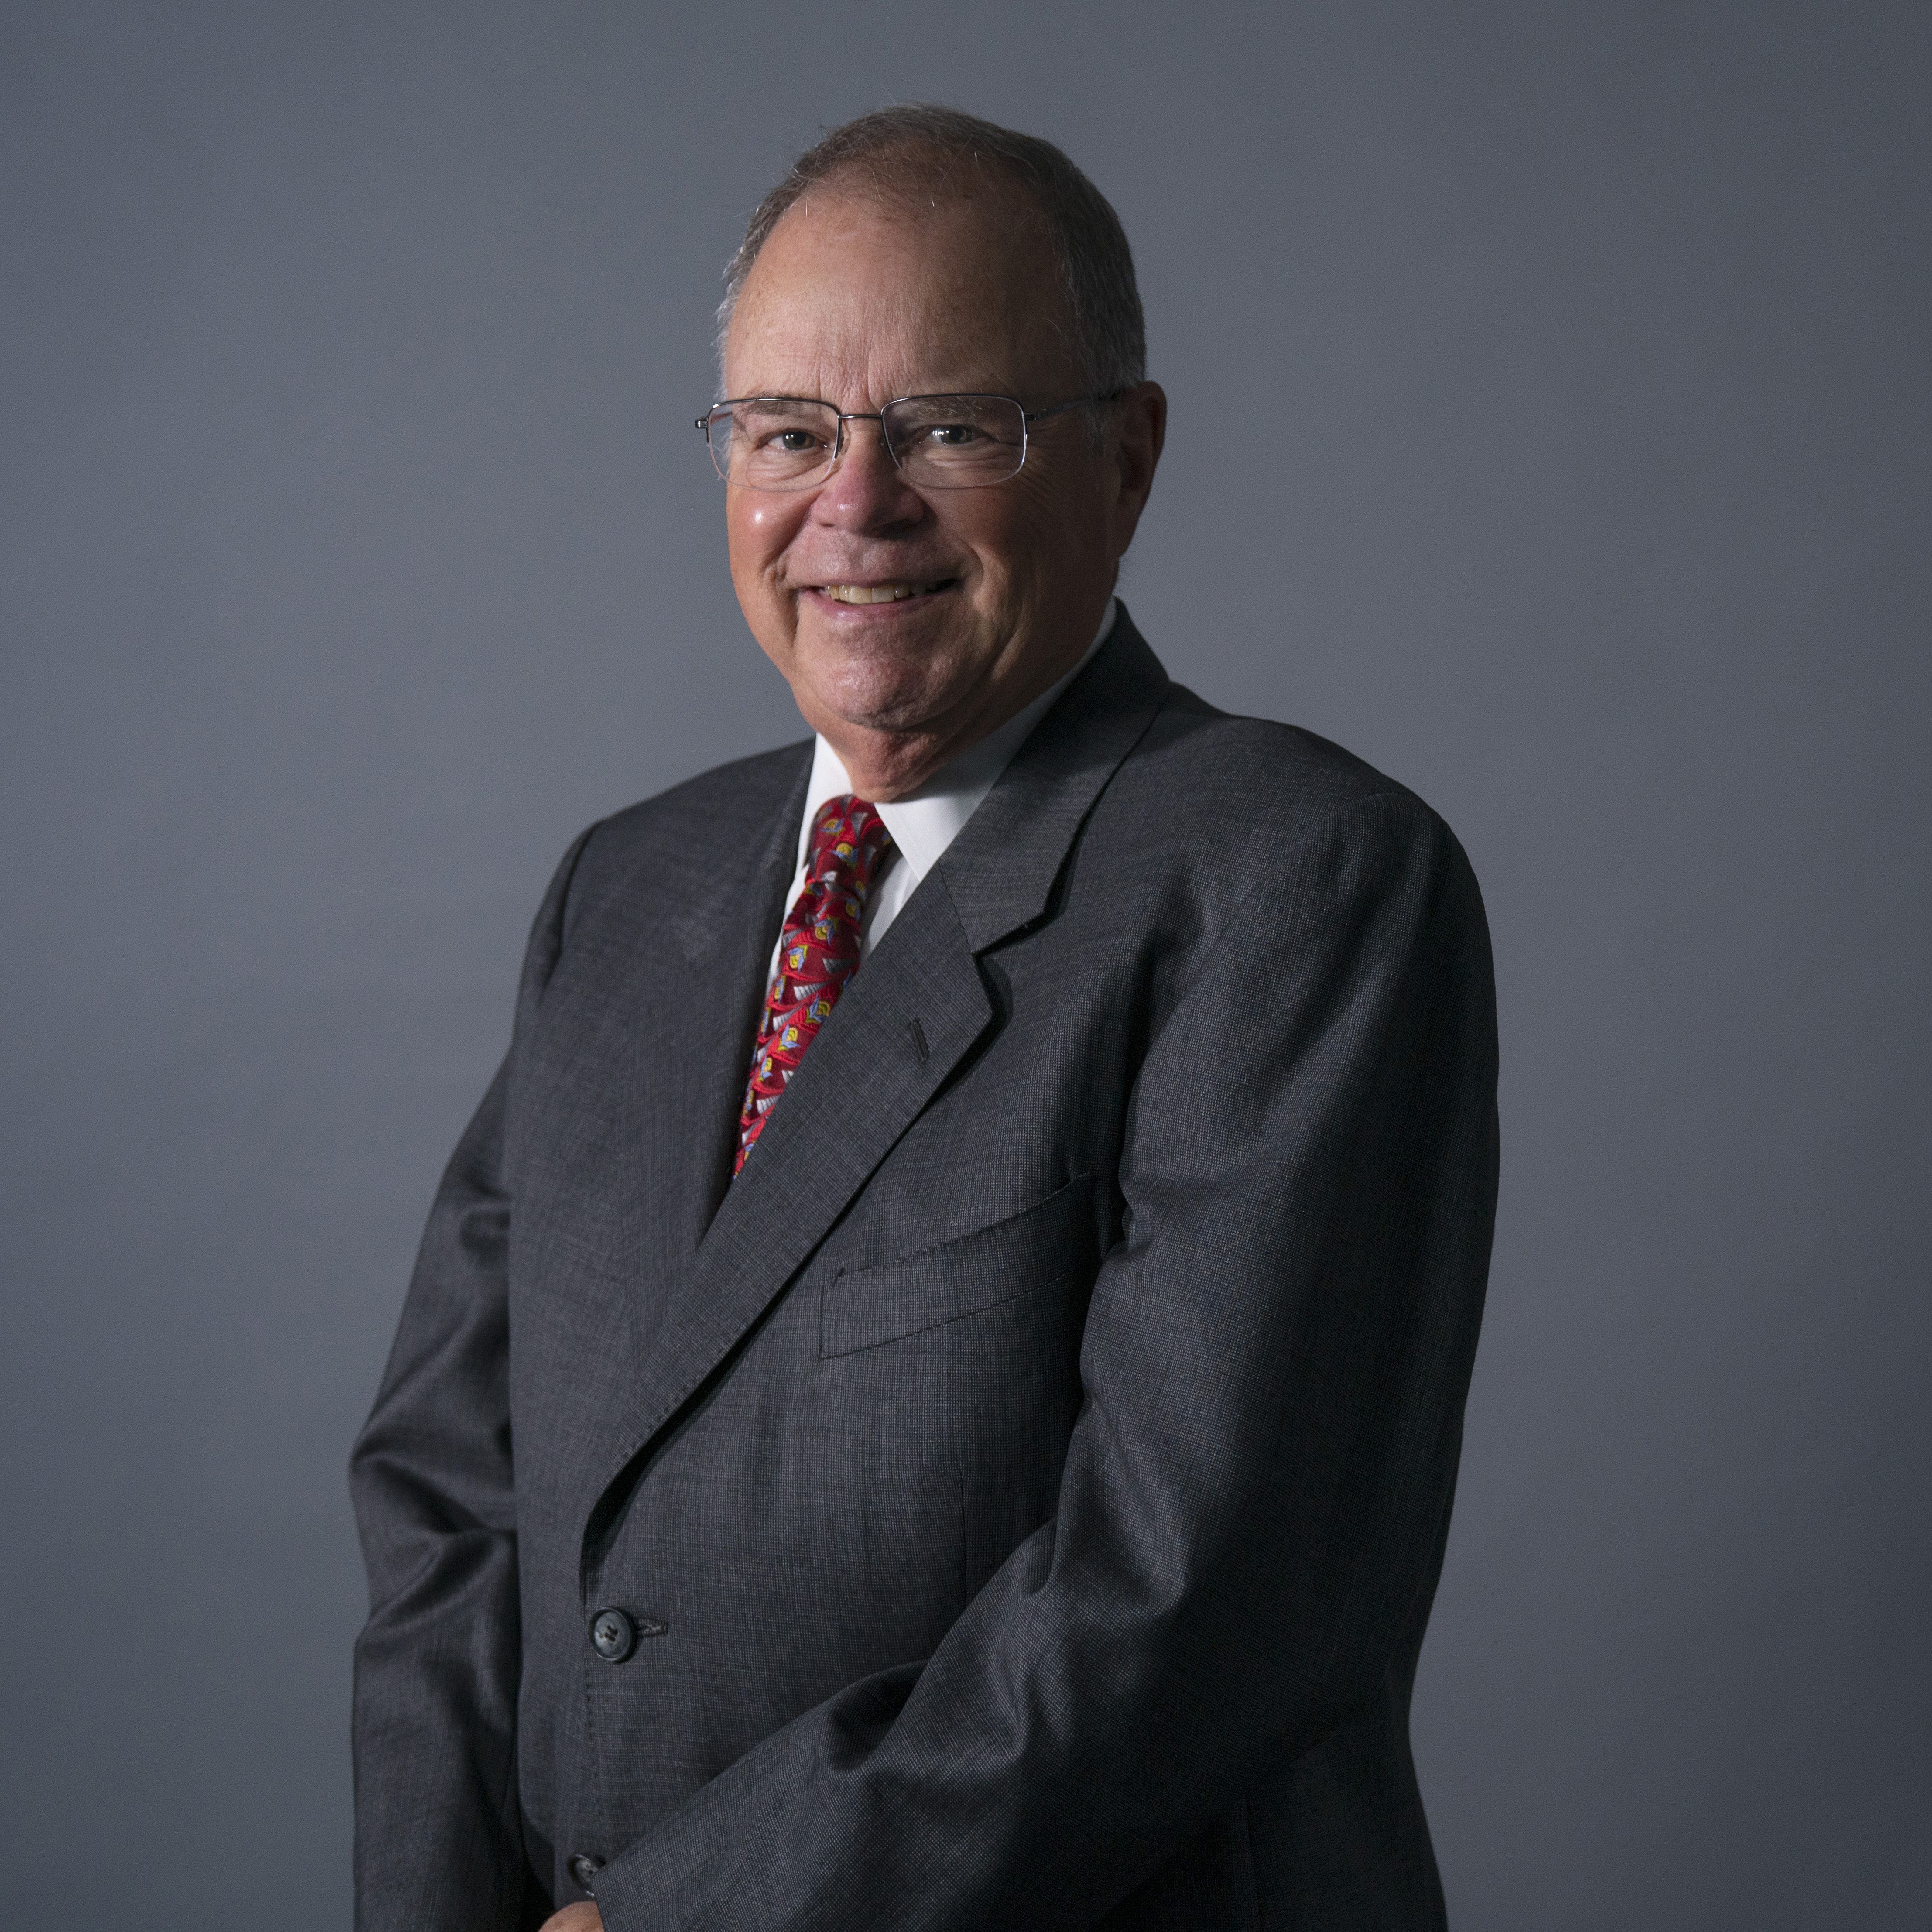 Photograph of Caucaisan man with glasses, wearing a grey suit with a red printed tie.